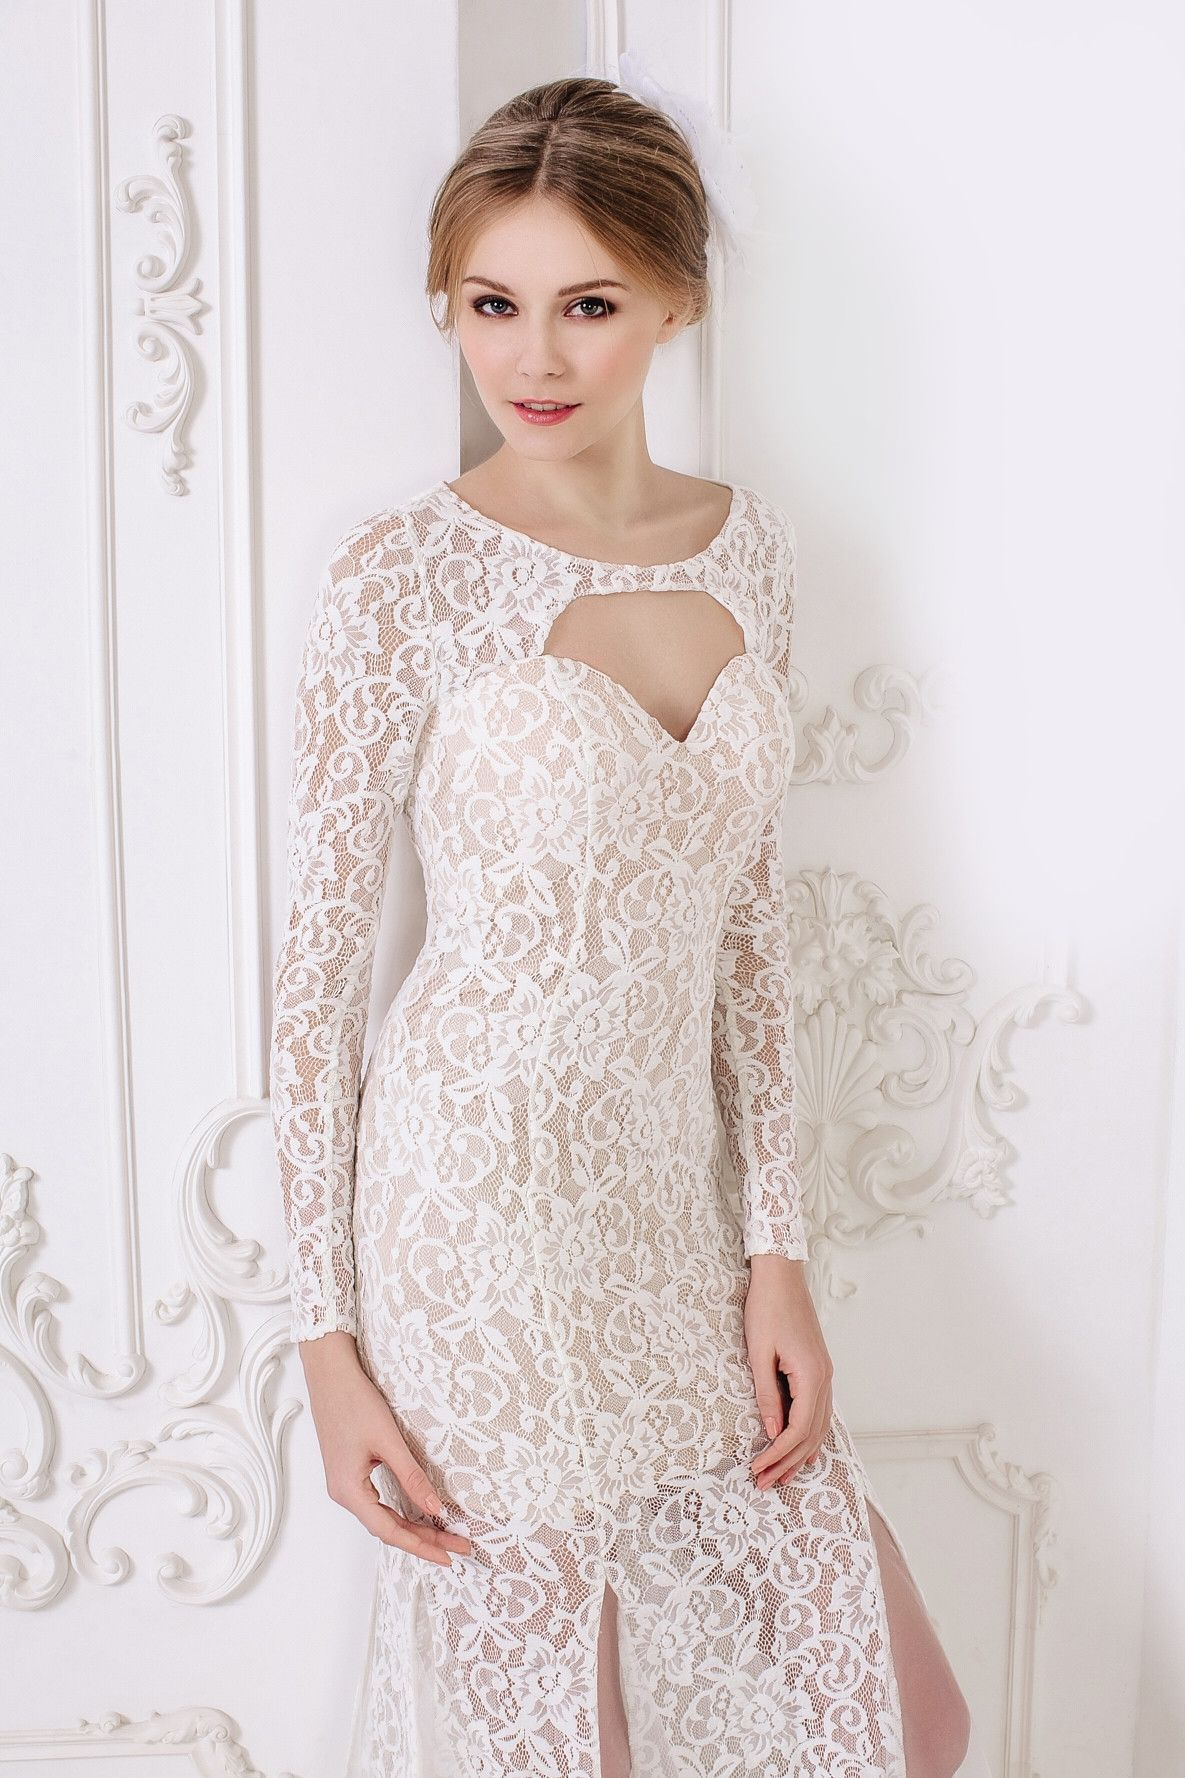 Kleo long lace wedding dress simple long dress lace wedding